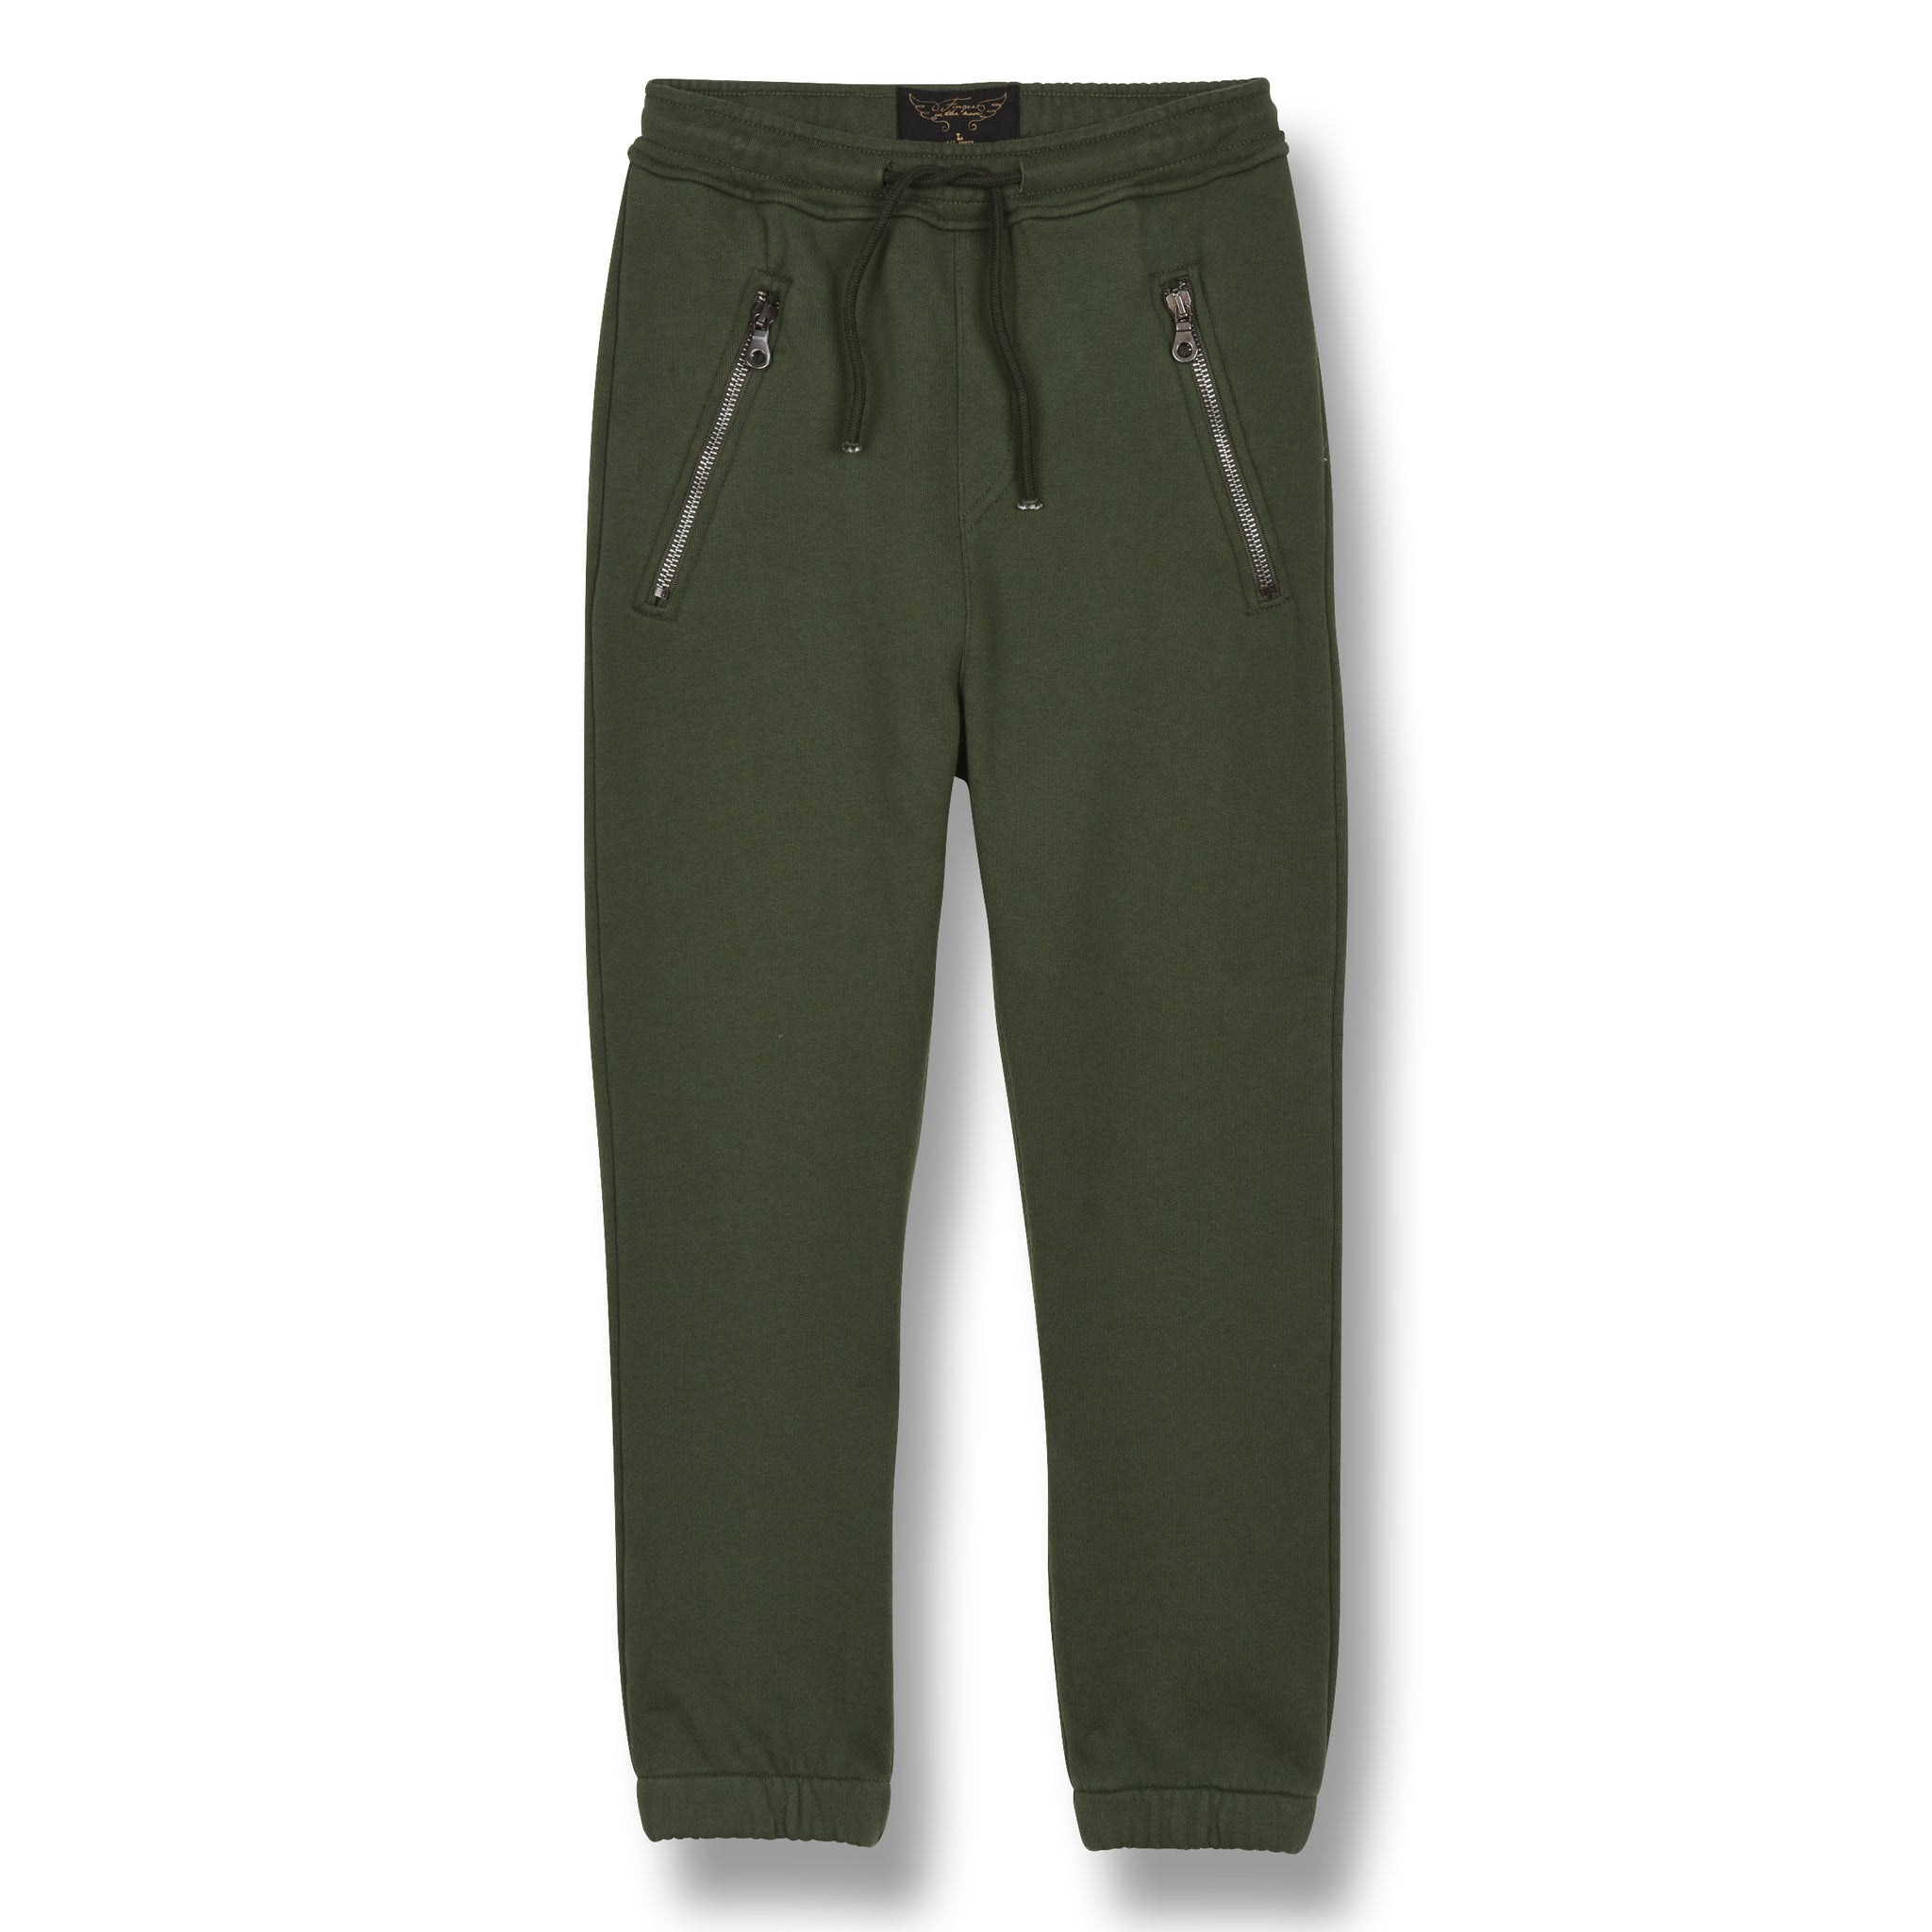 CONOR Khaki - Jogging Pants 1